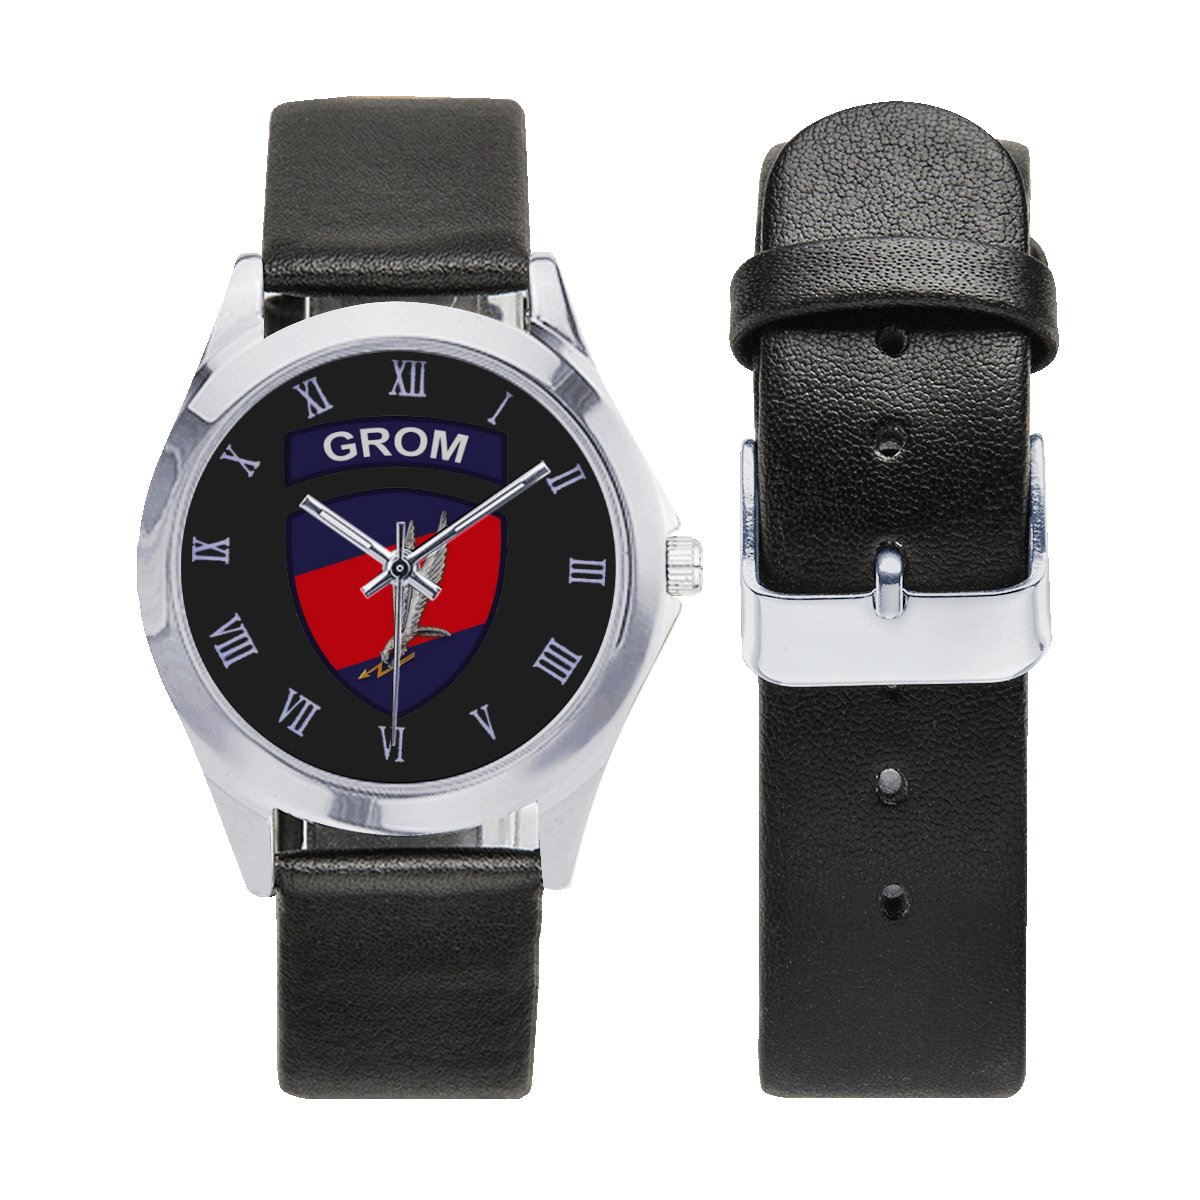 GROM Poland Elite Unit Special Force Leather Strap Watch Wrist Watches a perfect accessory